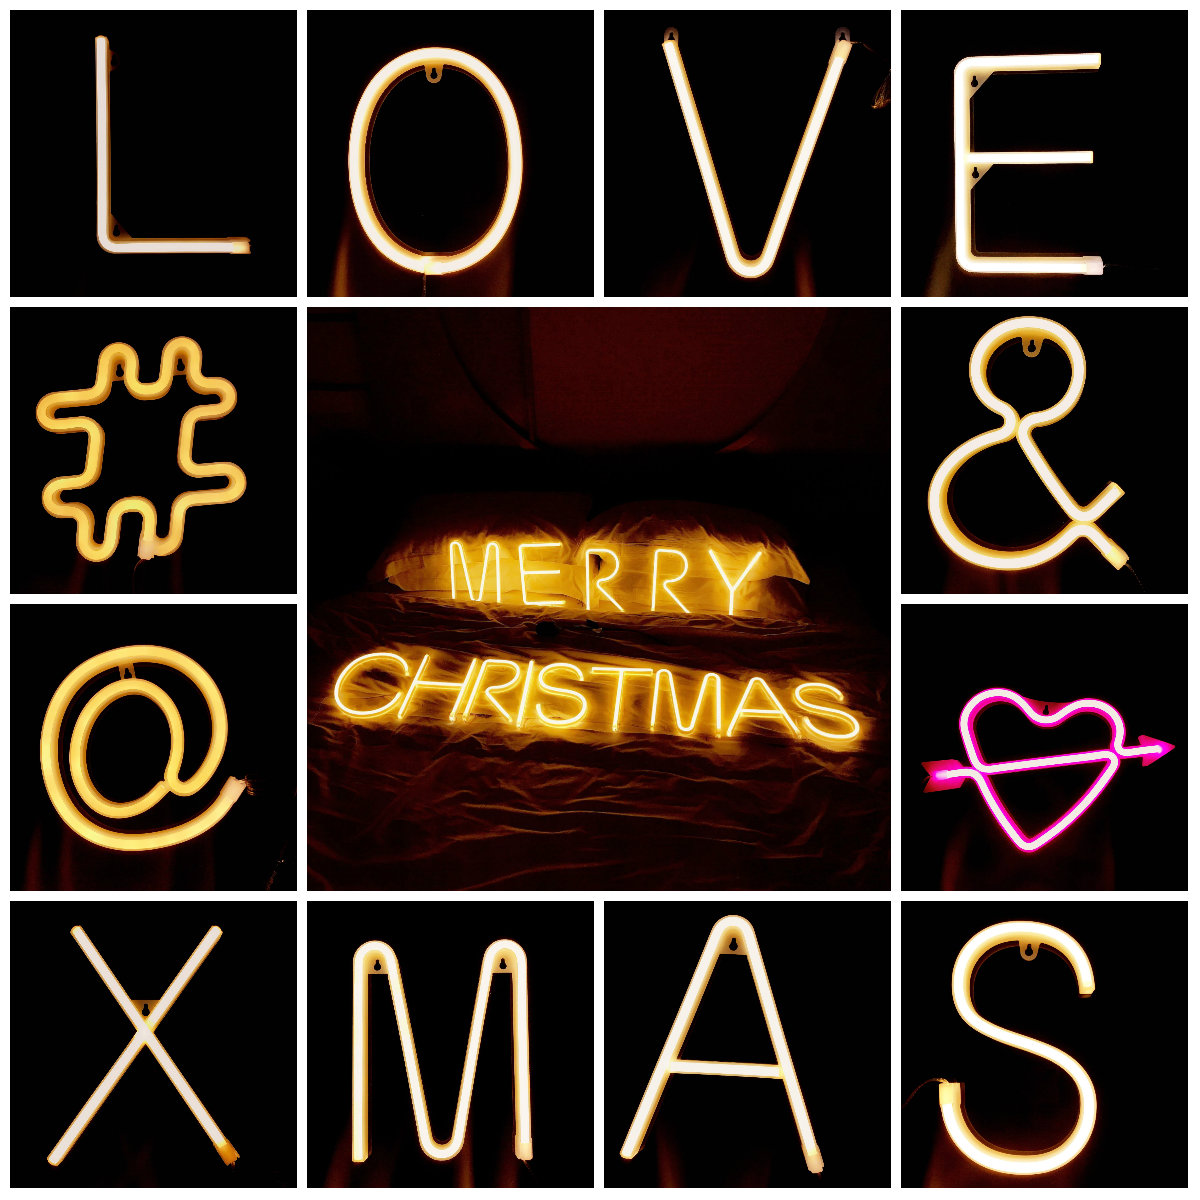 DIY Decorative Night Light Alphabet Propose Nightlight Indoor Wall Lamp Wedding Holiday Event Concert XMAX LED Gift IY304131